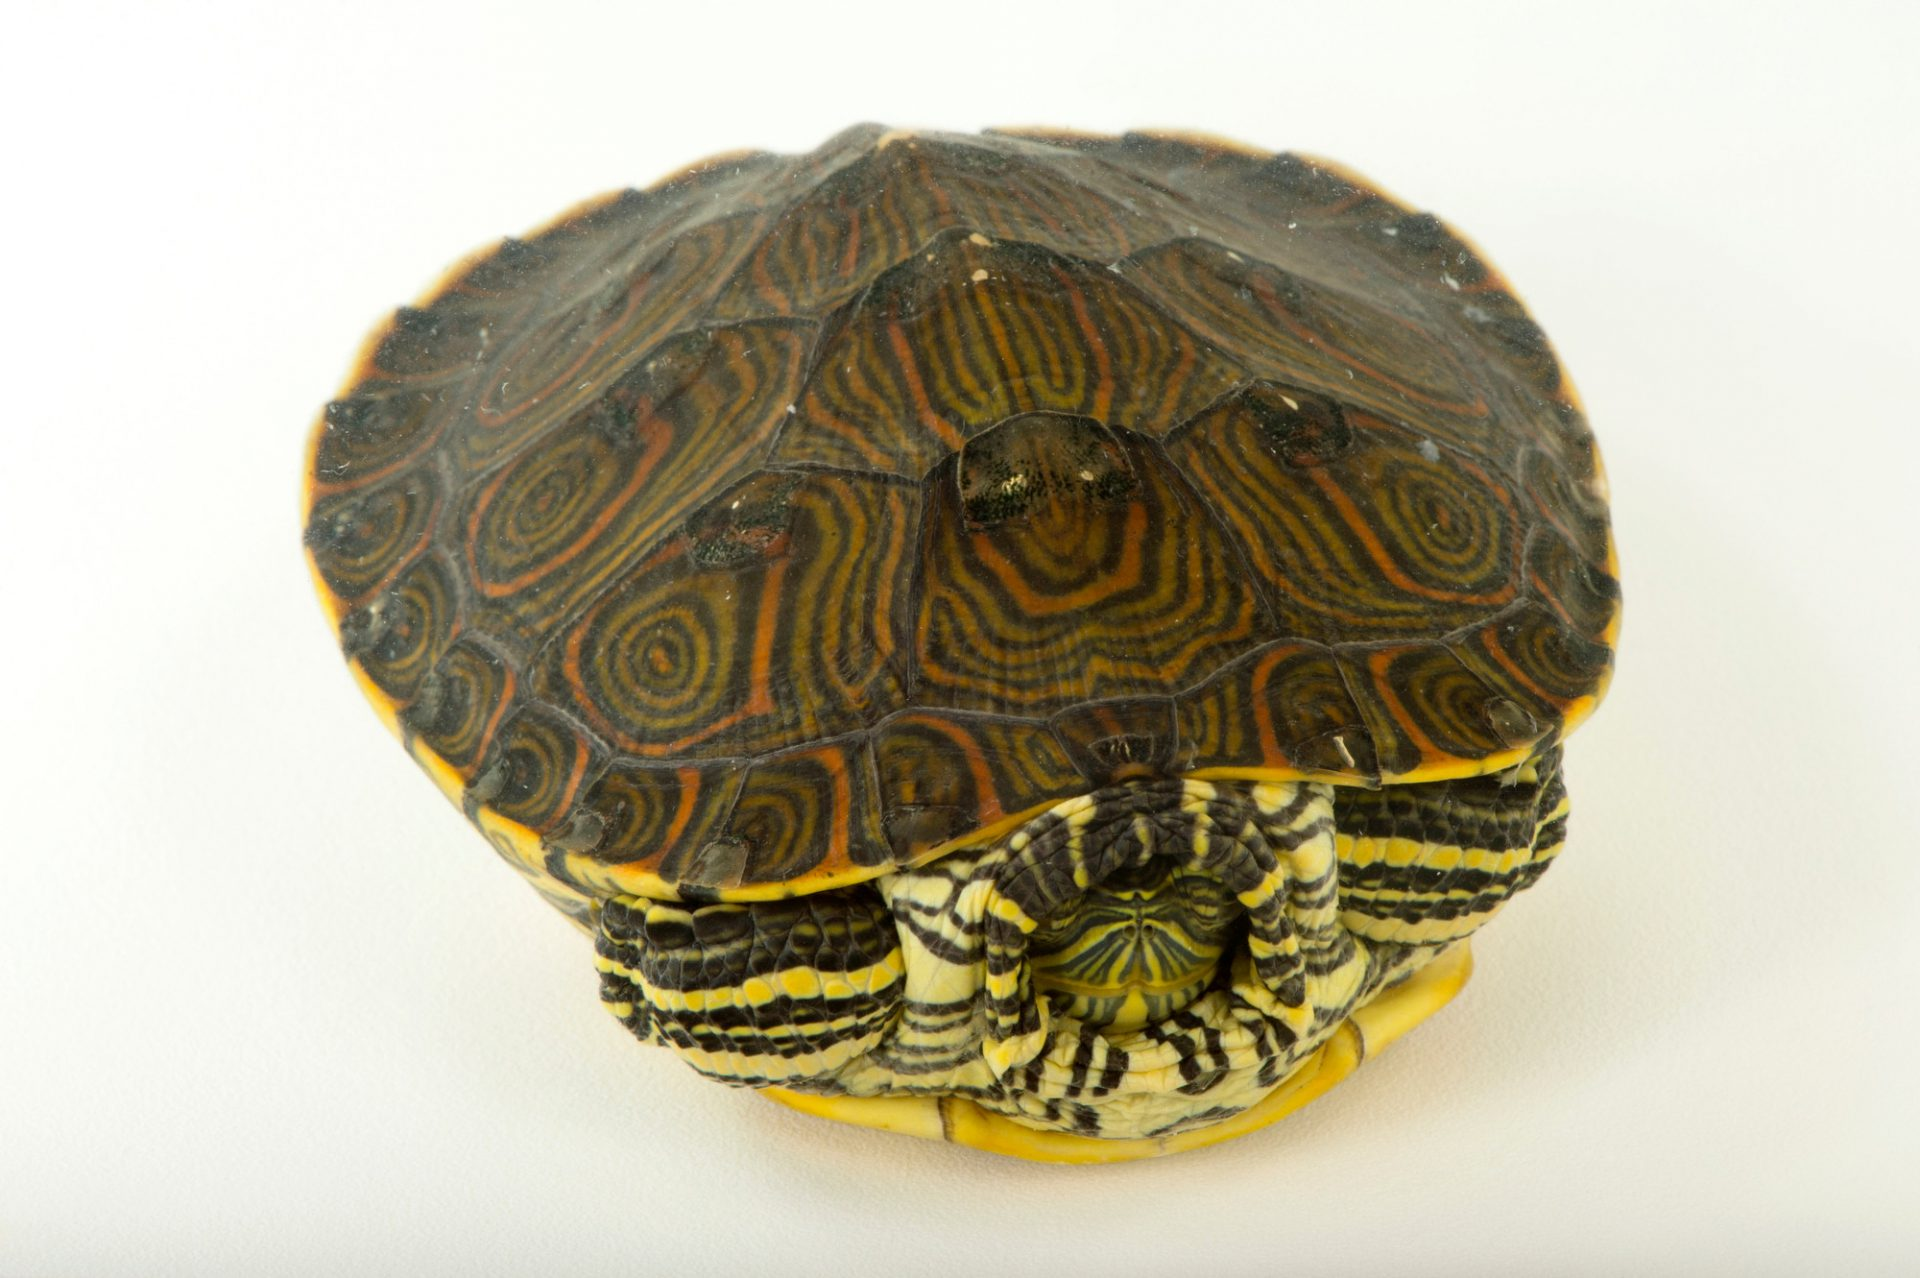 Picture of a Nicaraguan slider (Trachemys emolli) at the National Mississippi River Museum and Aquarium in Dubuque, Iowa.